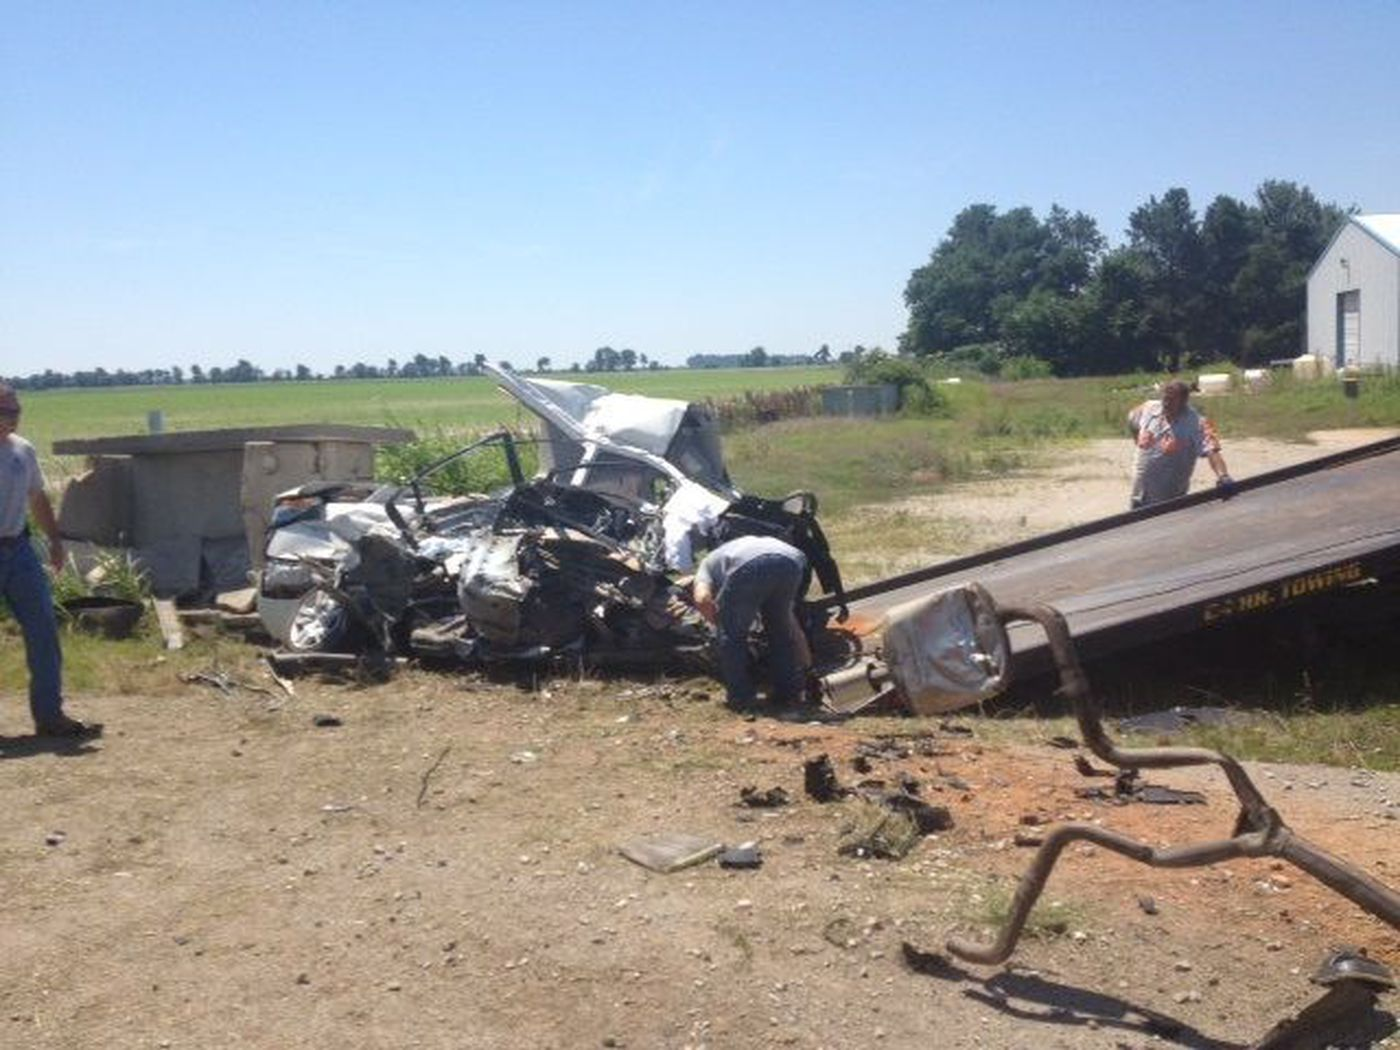 Name released in fatal Highway 18 accident